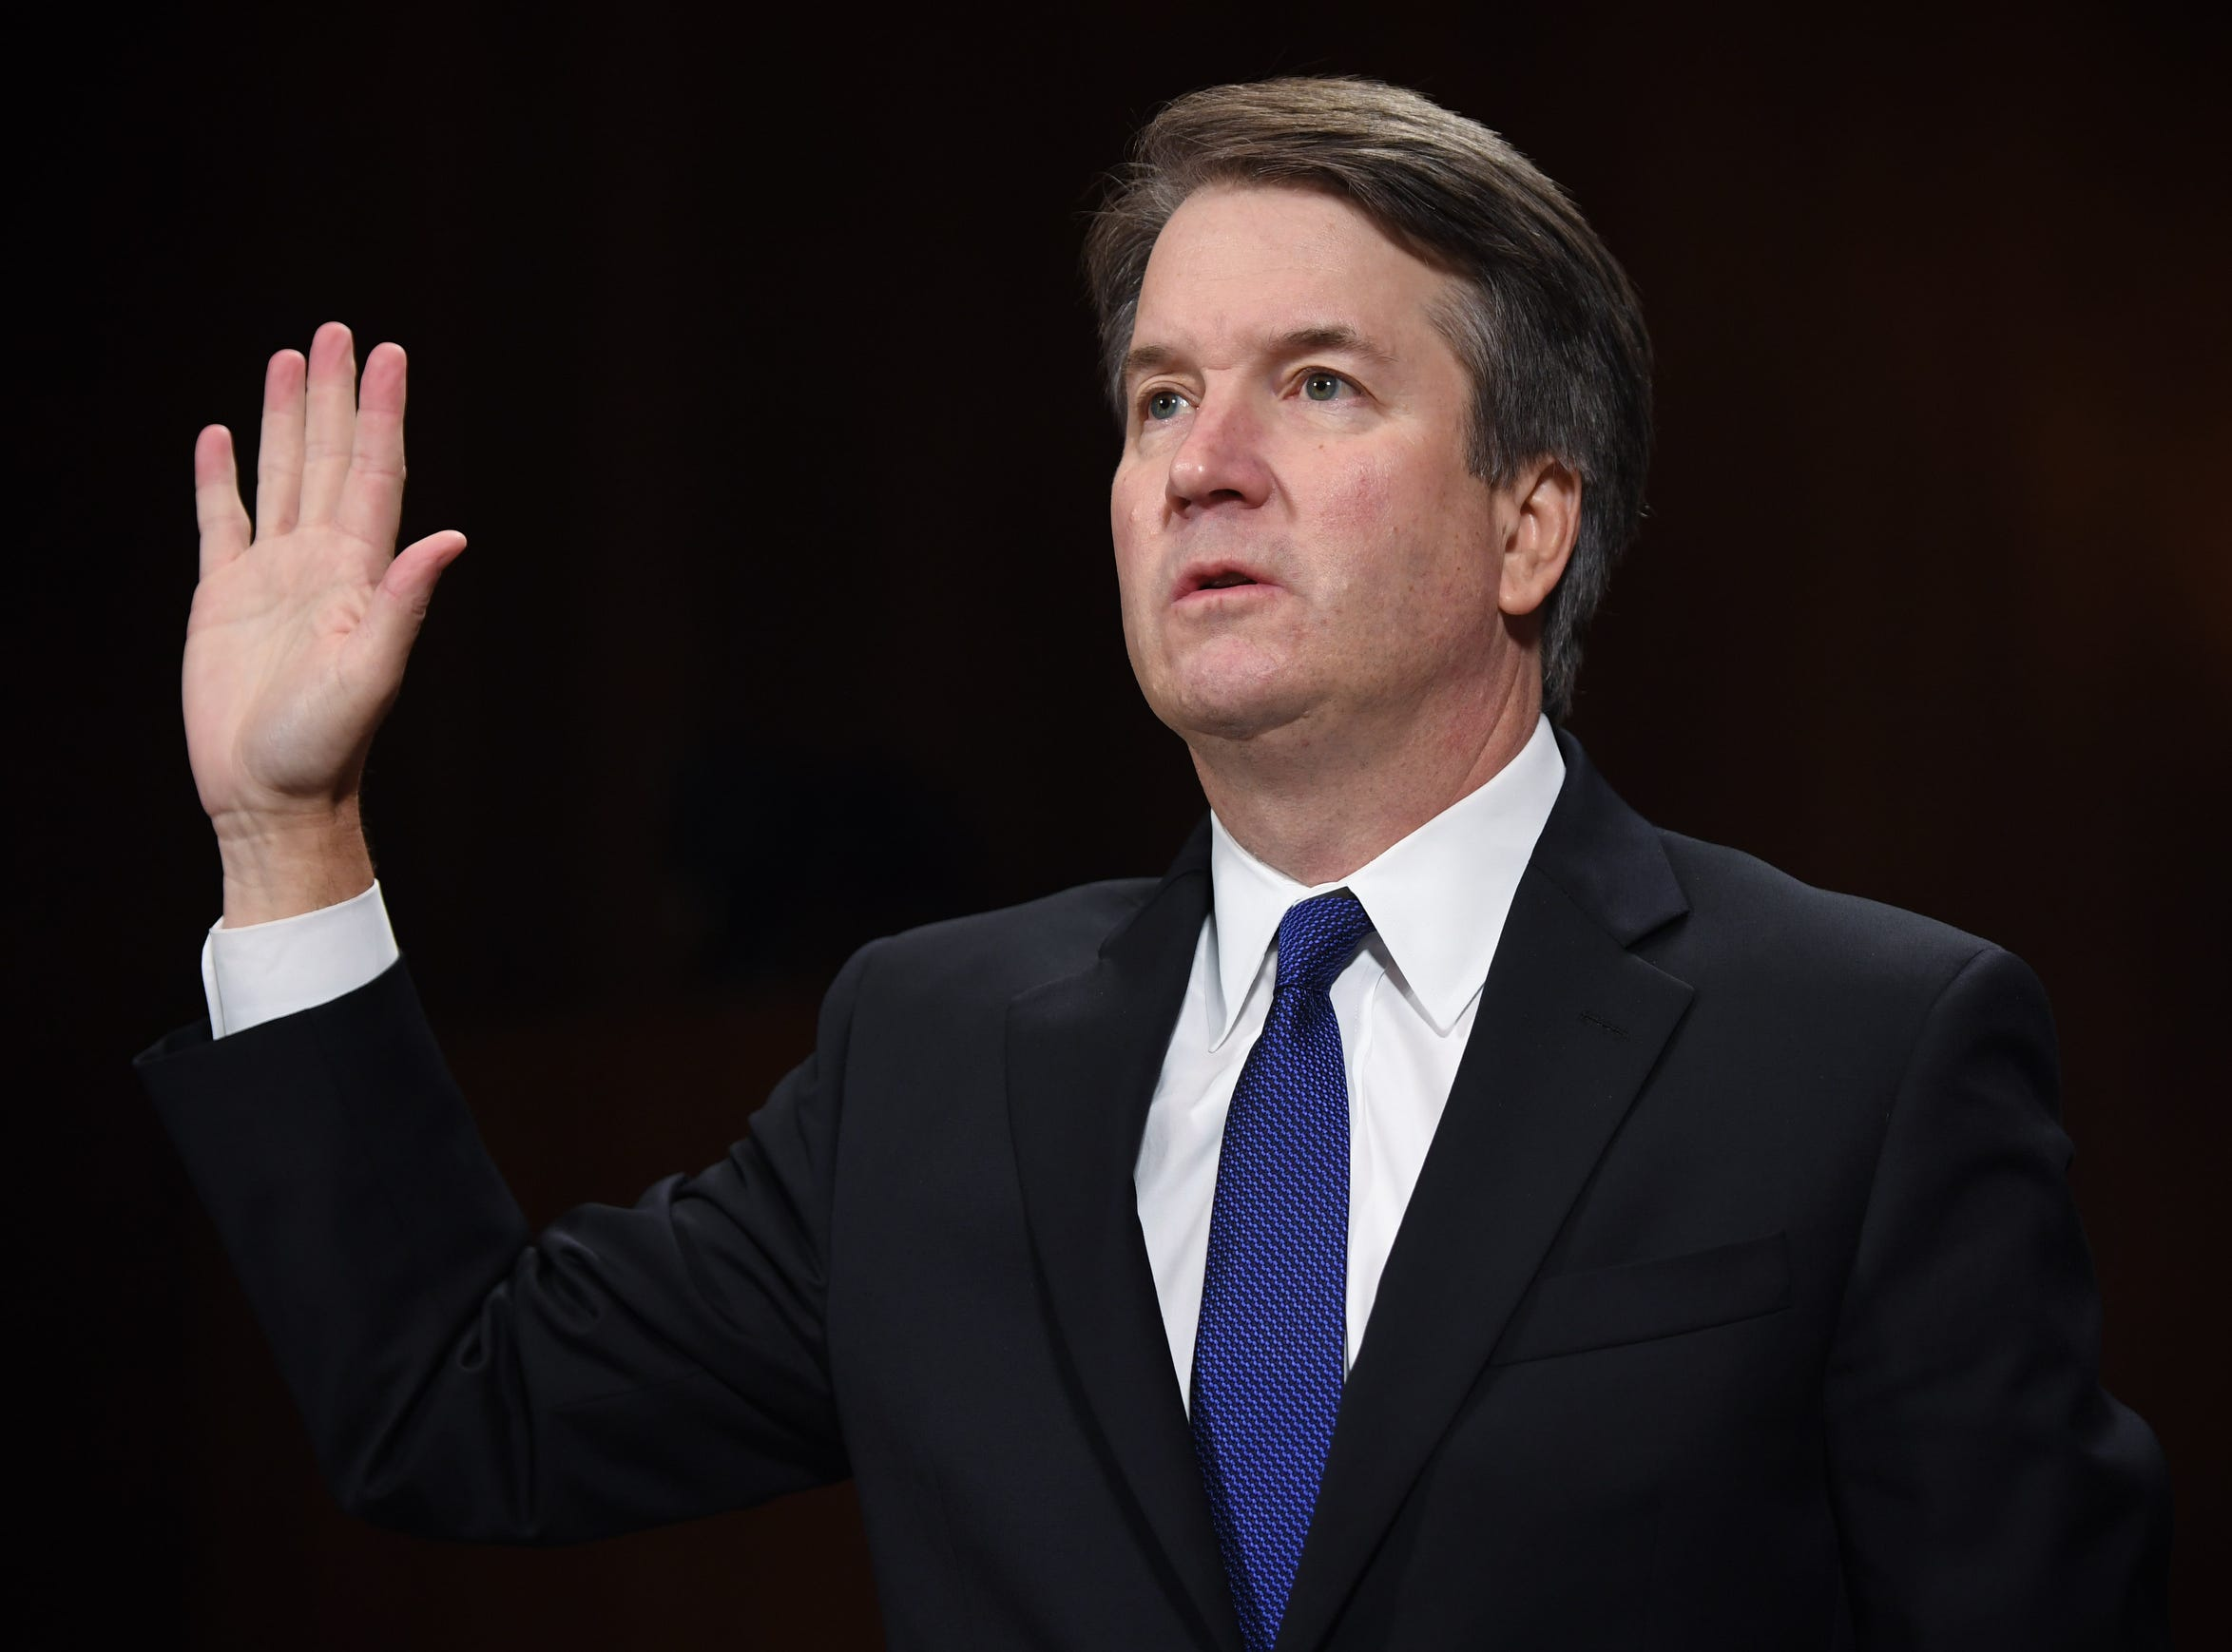 Supreme Court nominee Judge Brett Kavanaugh is sworn in to testify before the US Senate Judiciary Committee on Capitol Hill in Washington, DC, Sept. 27, 2018.